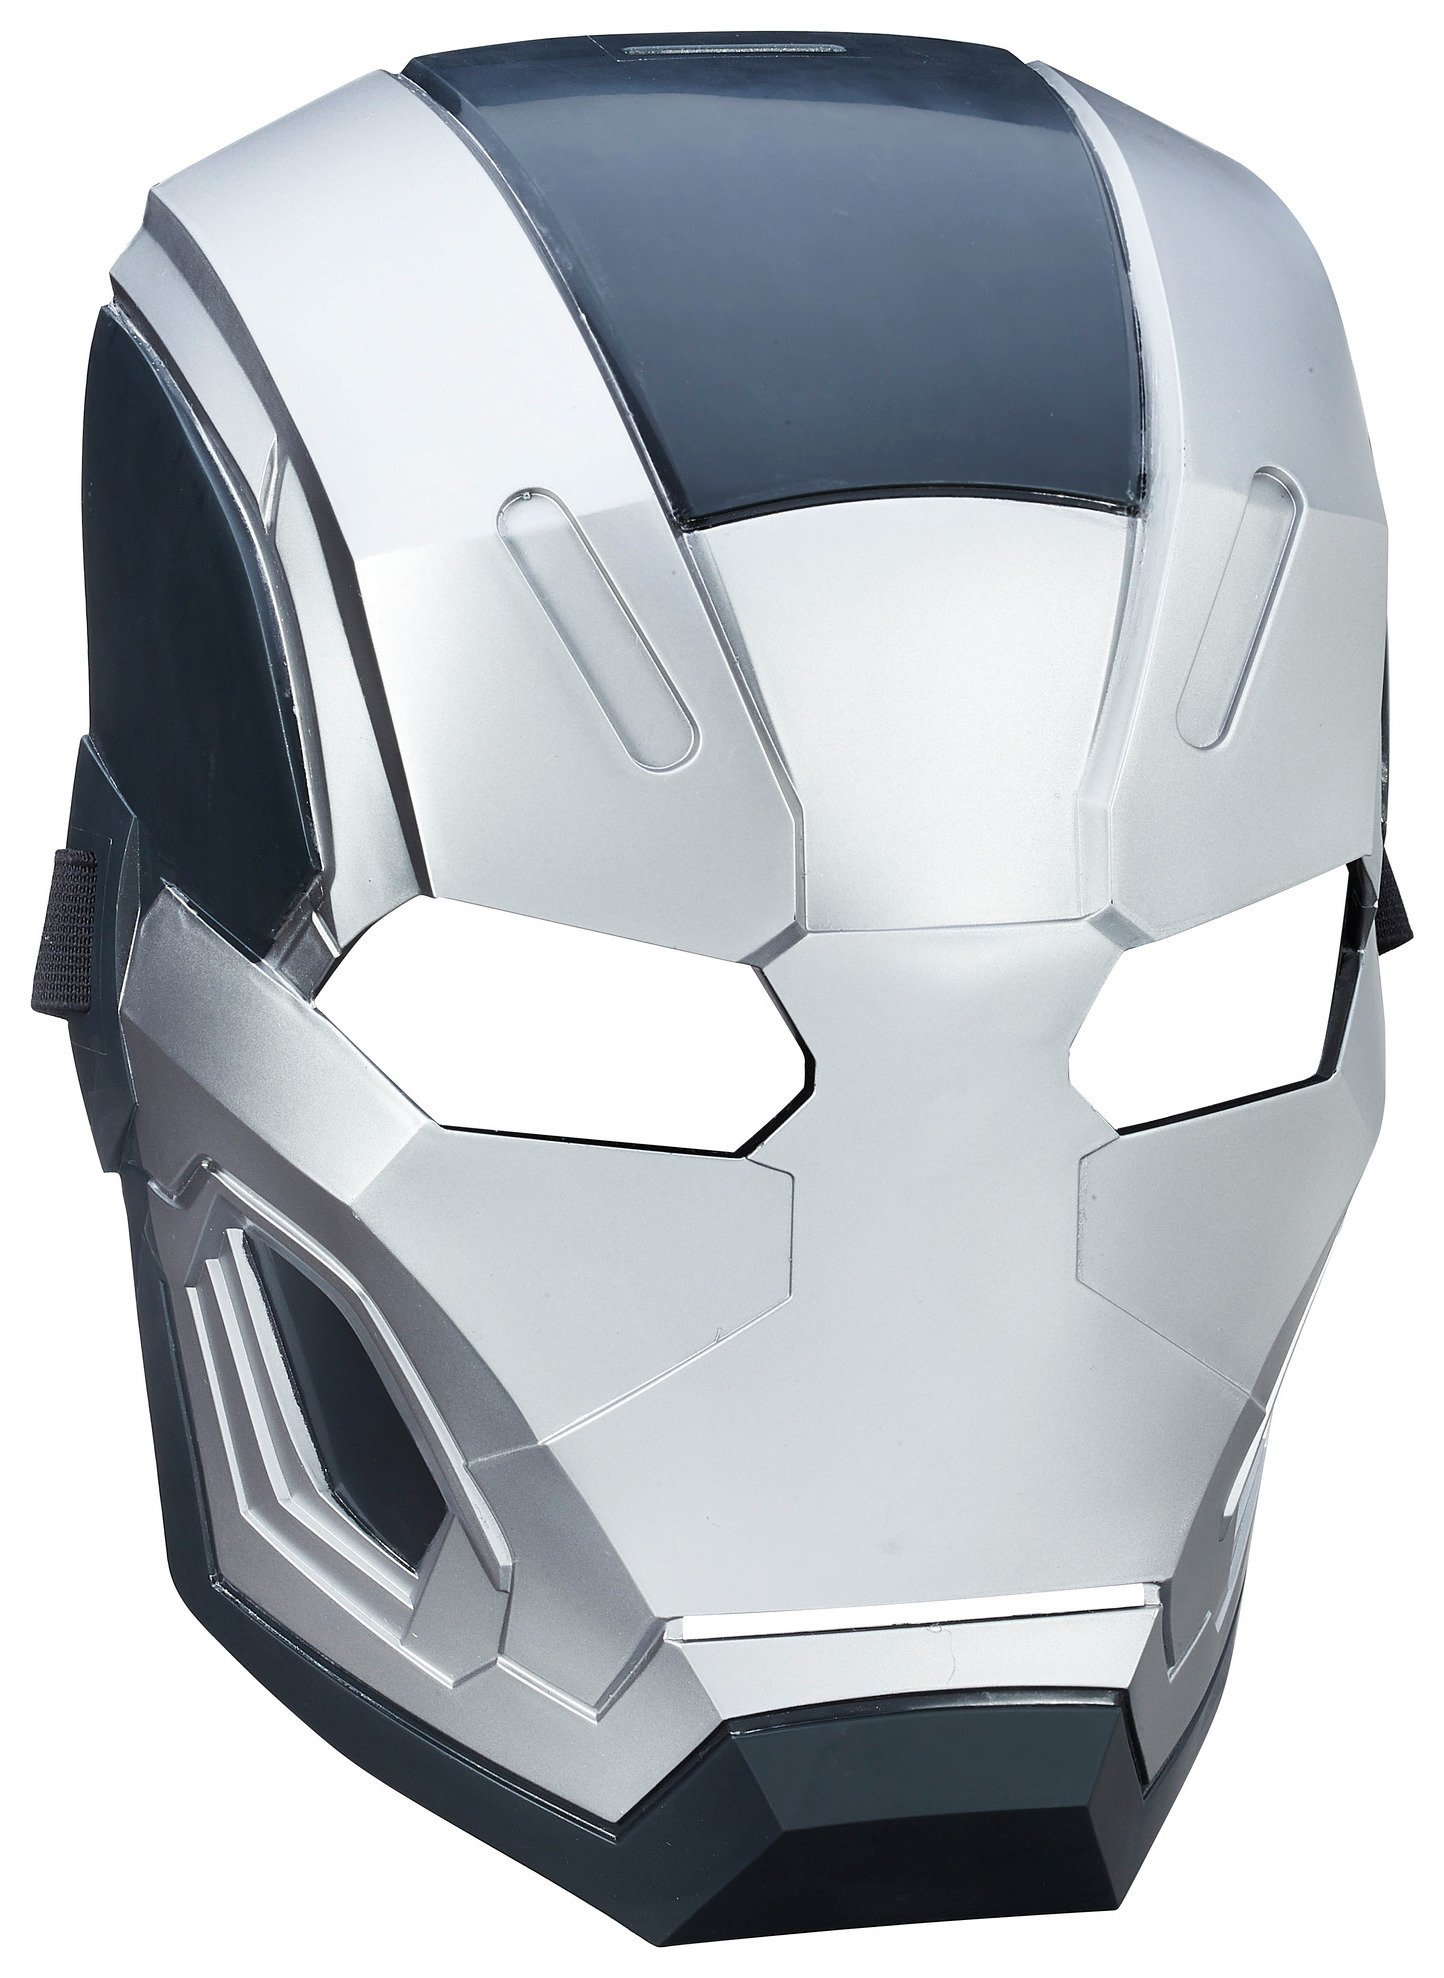 Image of Marvel Captain America: Civil War Marvel's War Machine Mask.